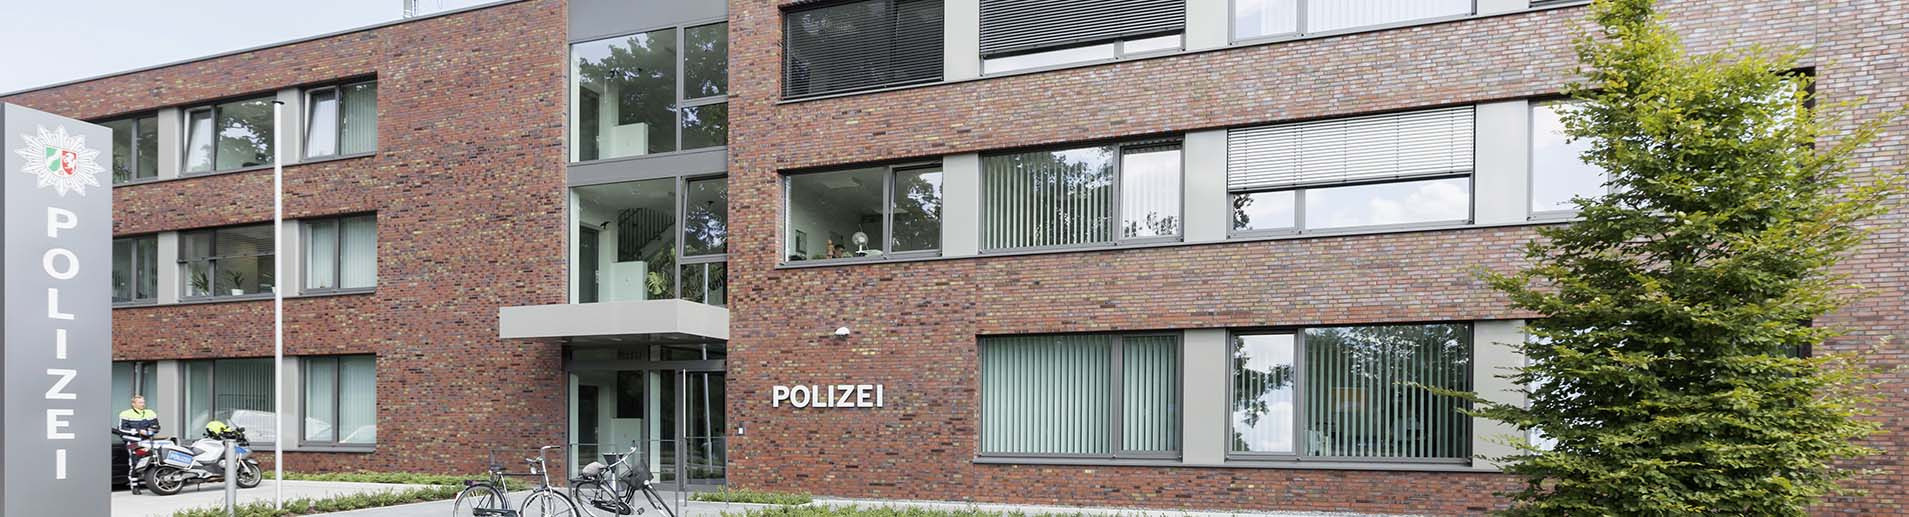 Polizeistation Ahaus